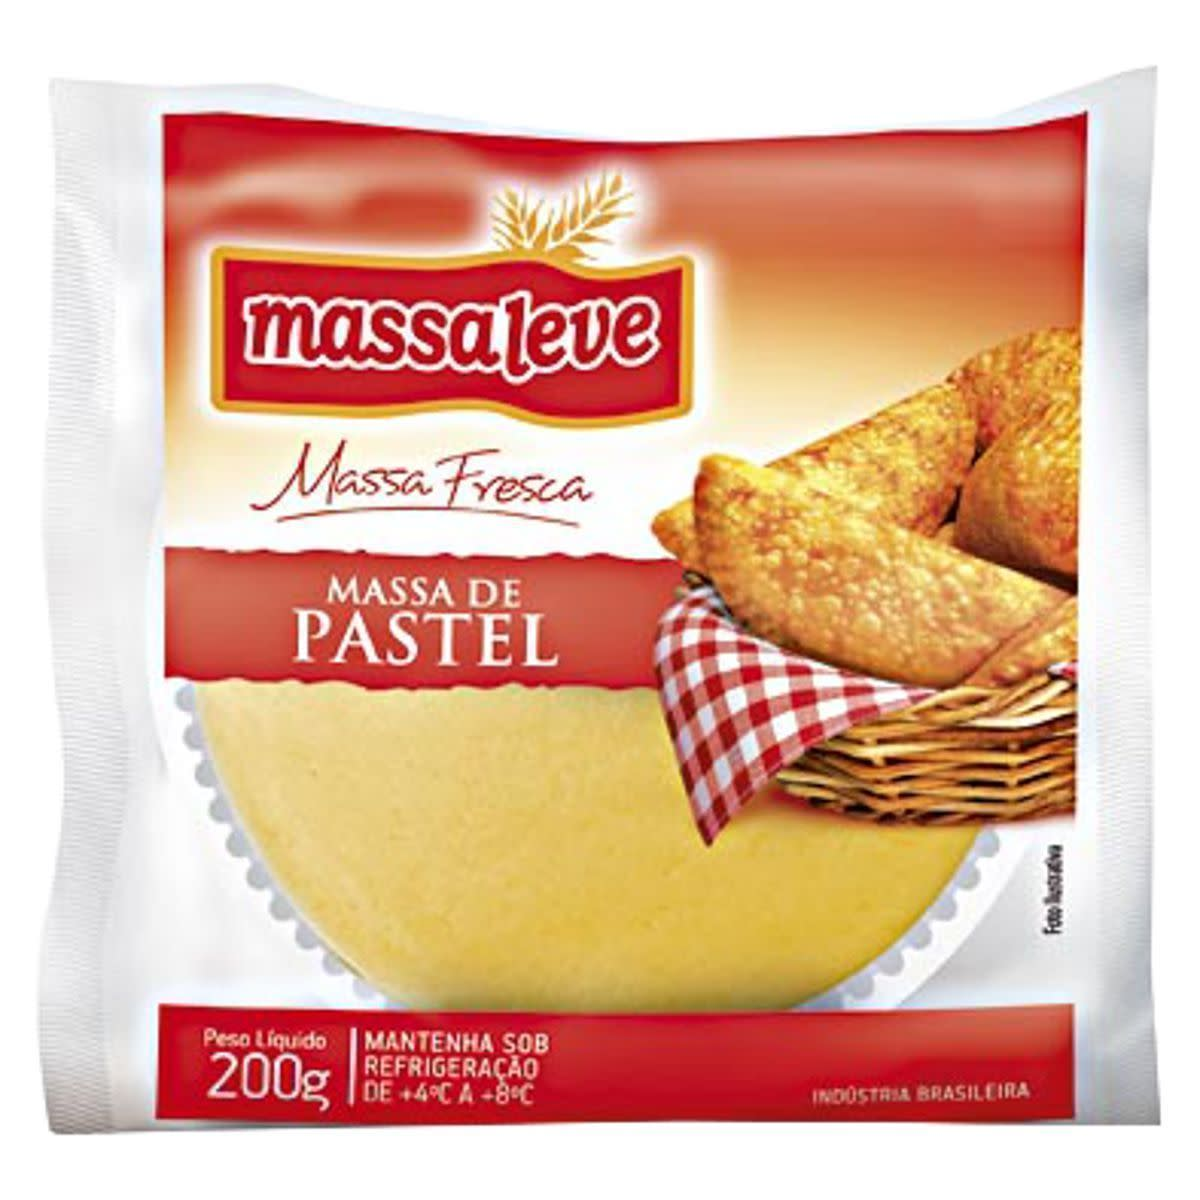 Since pastries are so common here, it is easy to find dough made especially for pastries in supermarkets. If you can find them, circular pastry sheets work best.